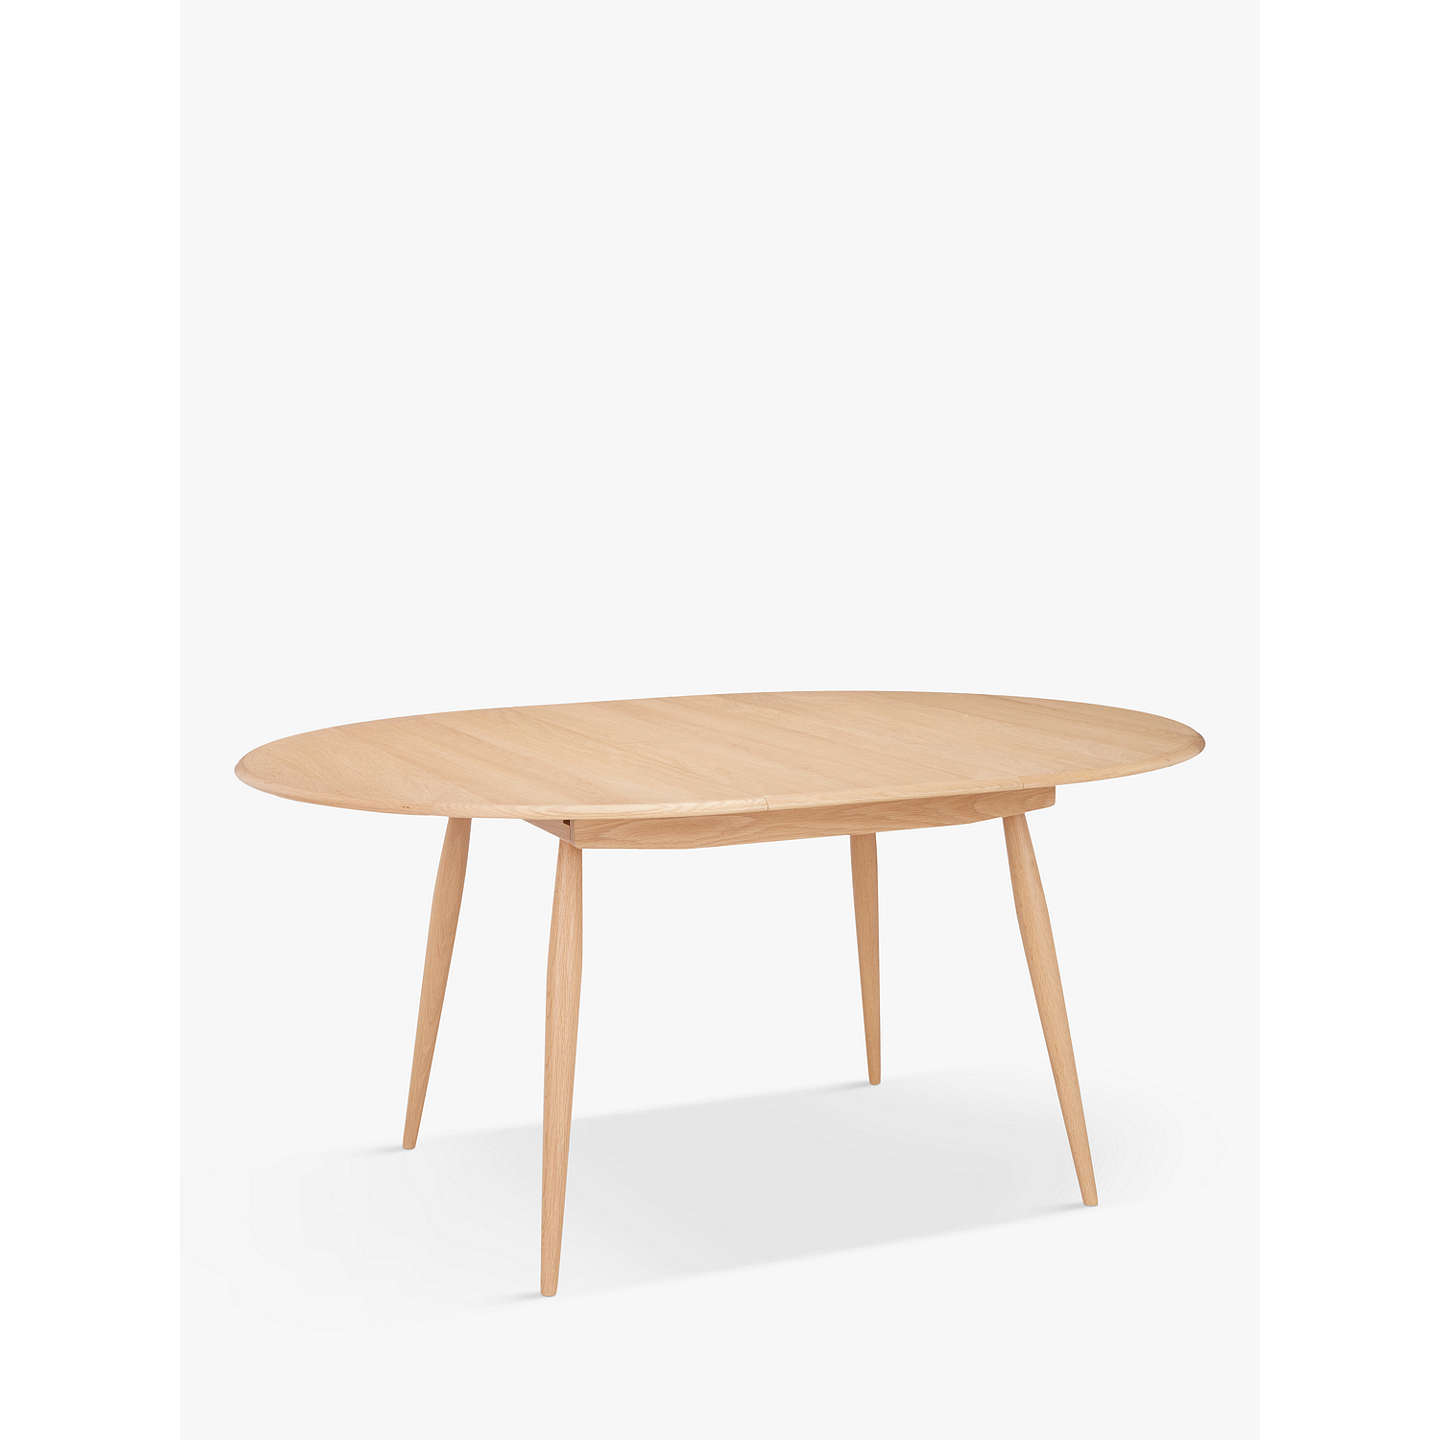 Merveilleux Buyercol For John Lewis Shalstone Round Extending Dining Table Online At  Johnlewis.com ...